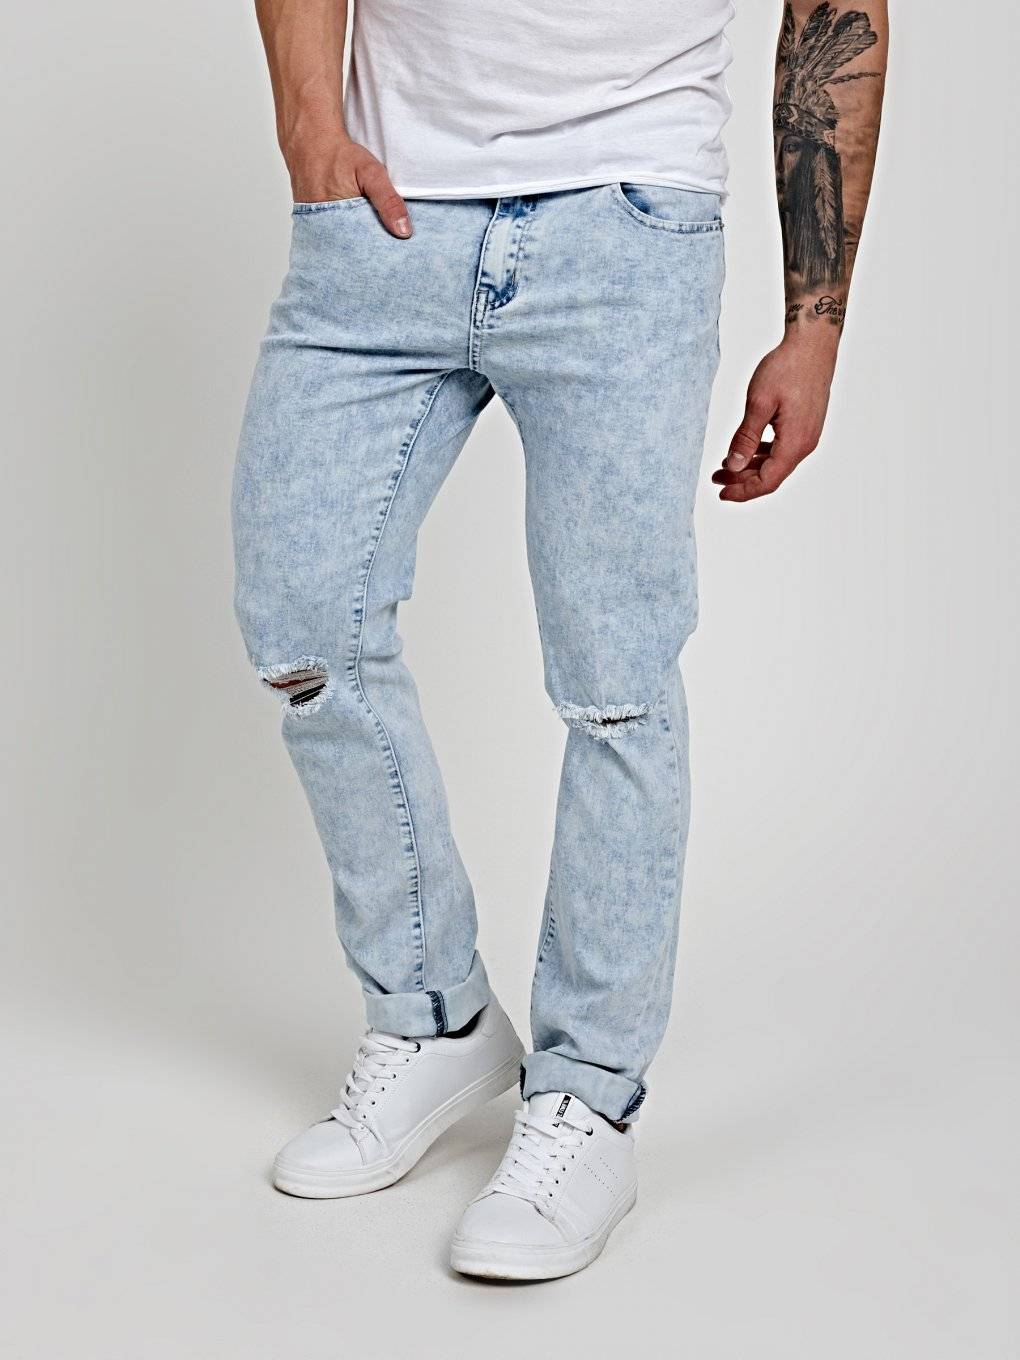 RIPPED KNEE STRAIGHT SLIM FIT JEANS IN LIGHT BLUE WASH